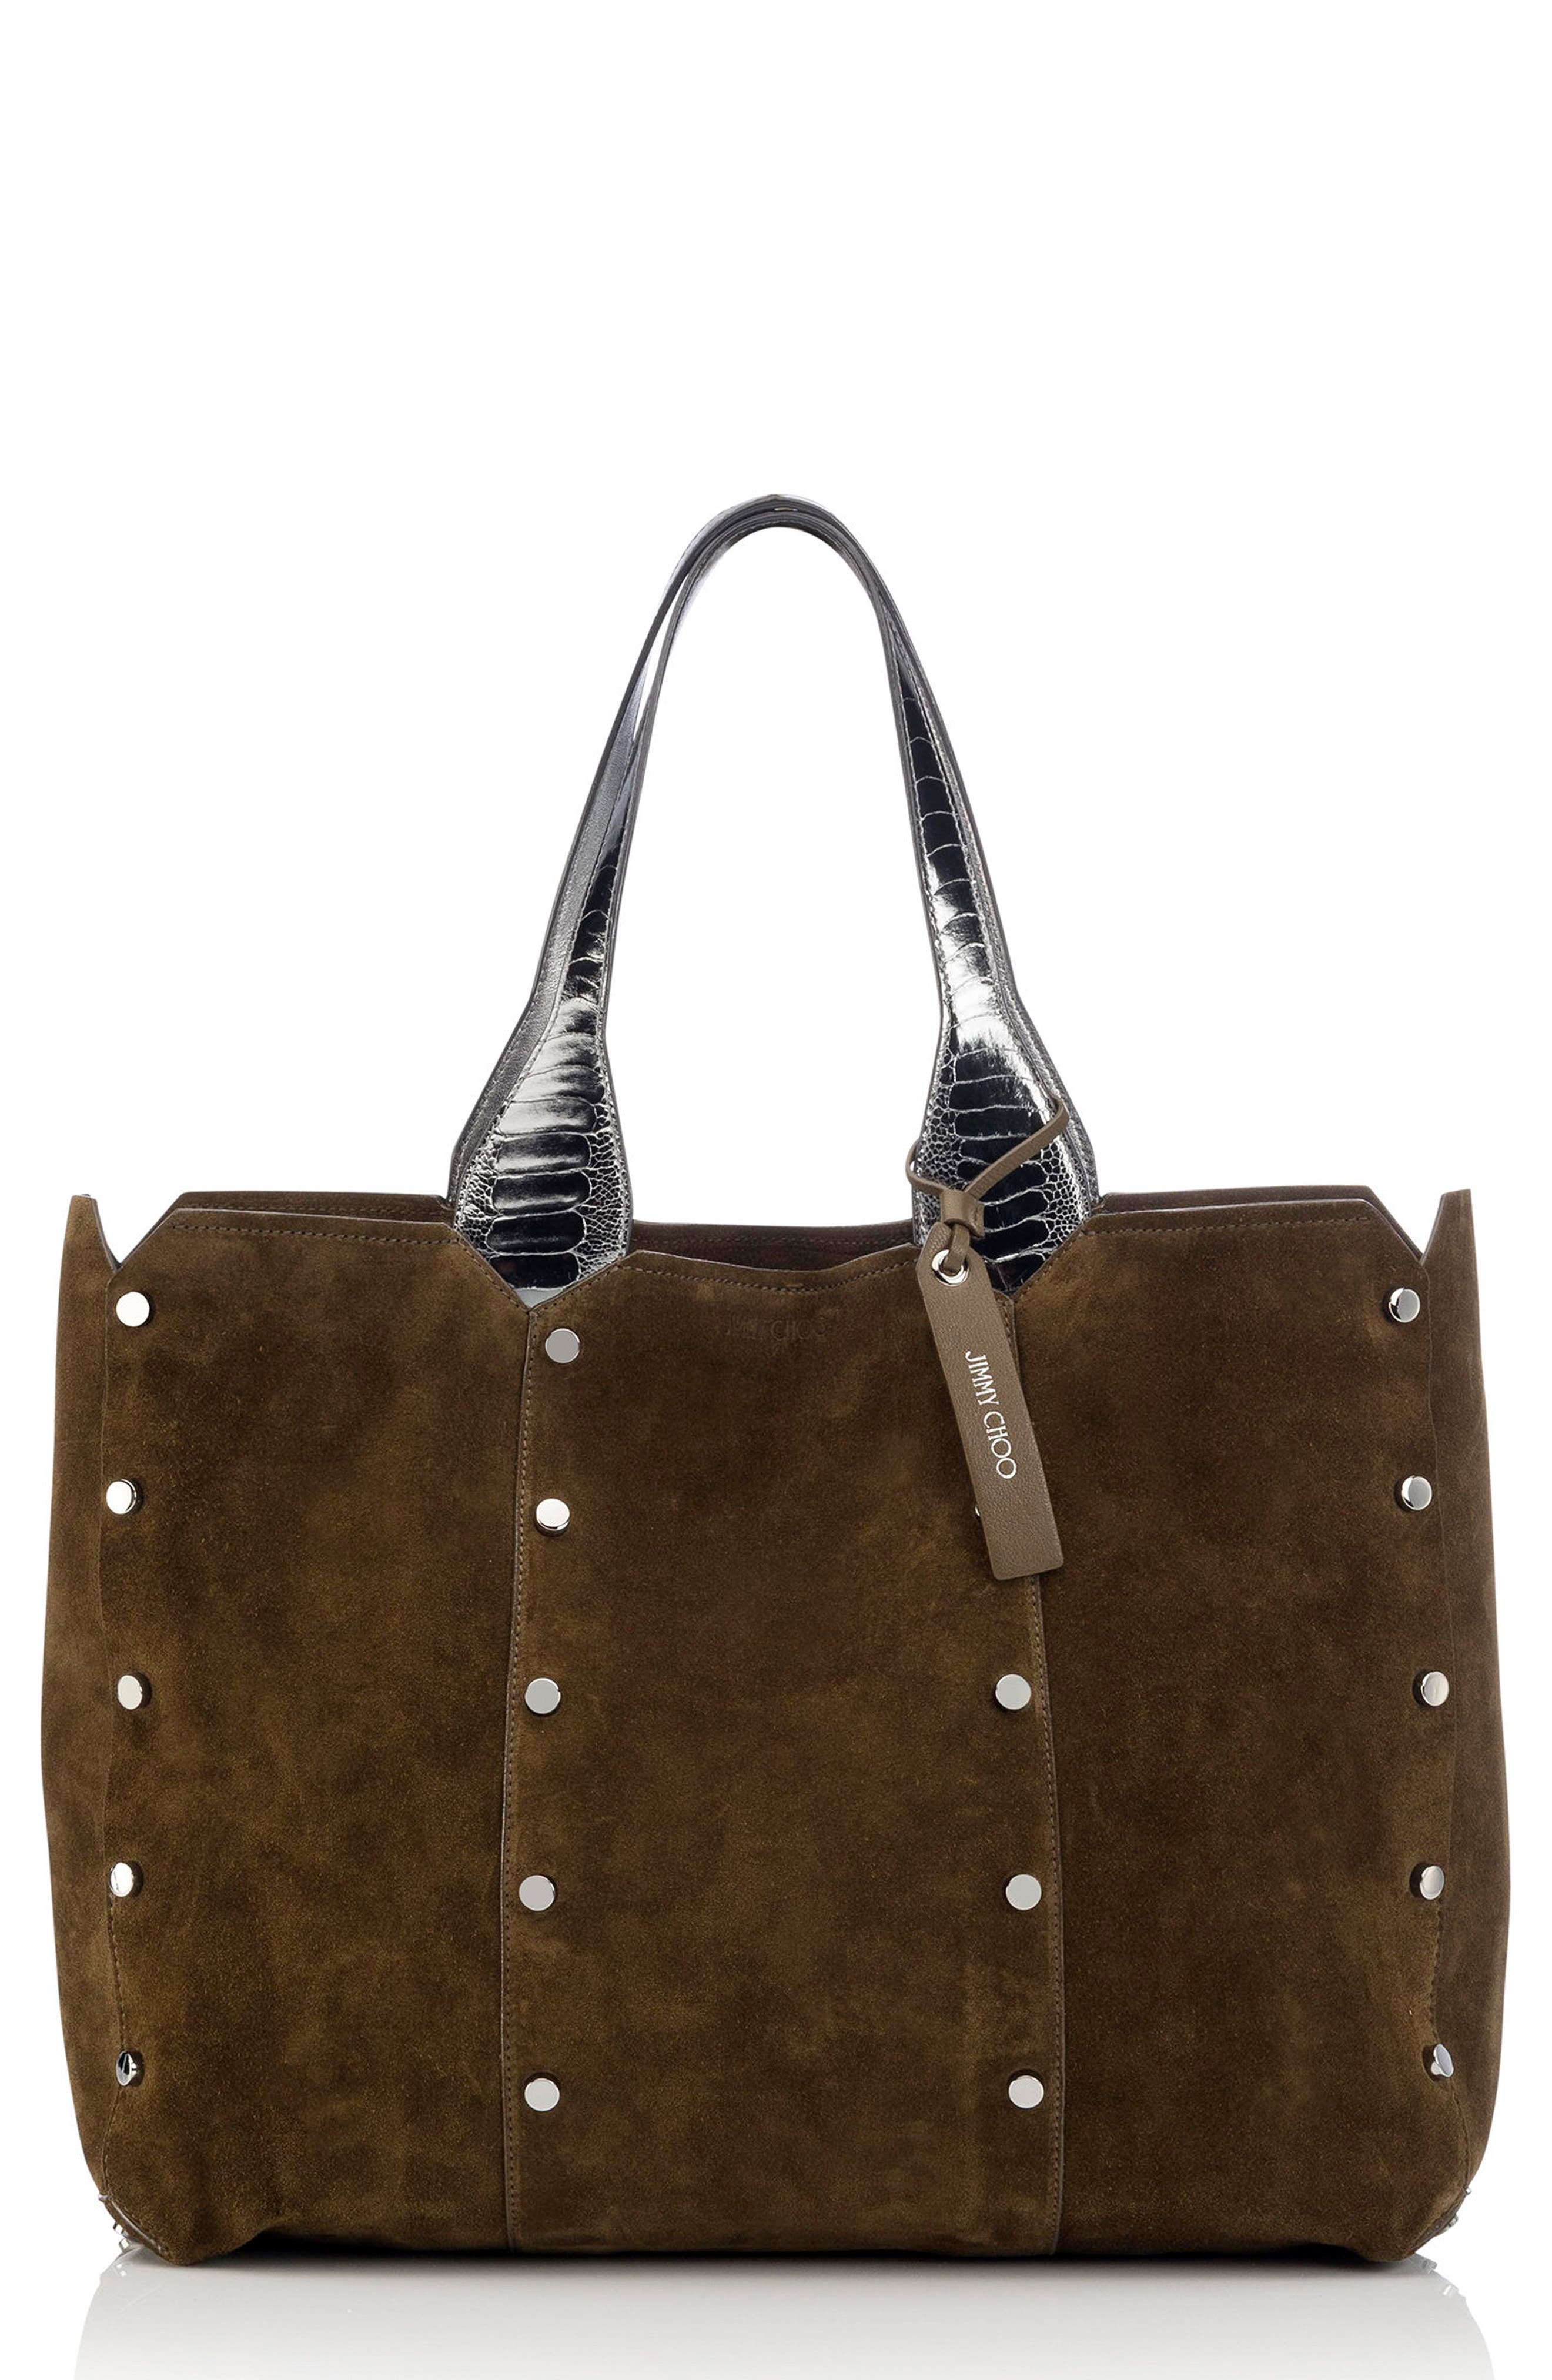 Lockett Suede & Metallic Leather Shopper,                             Main thumbnail 1, color,                             Olive/ Steel